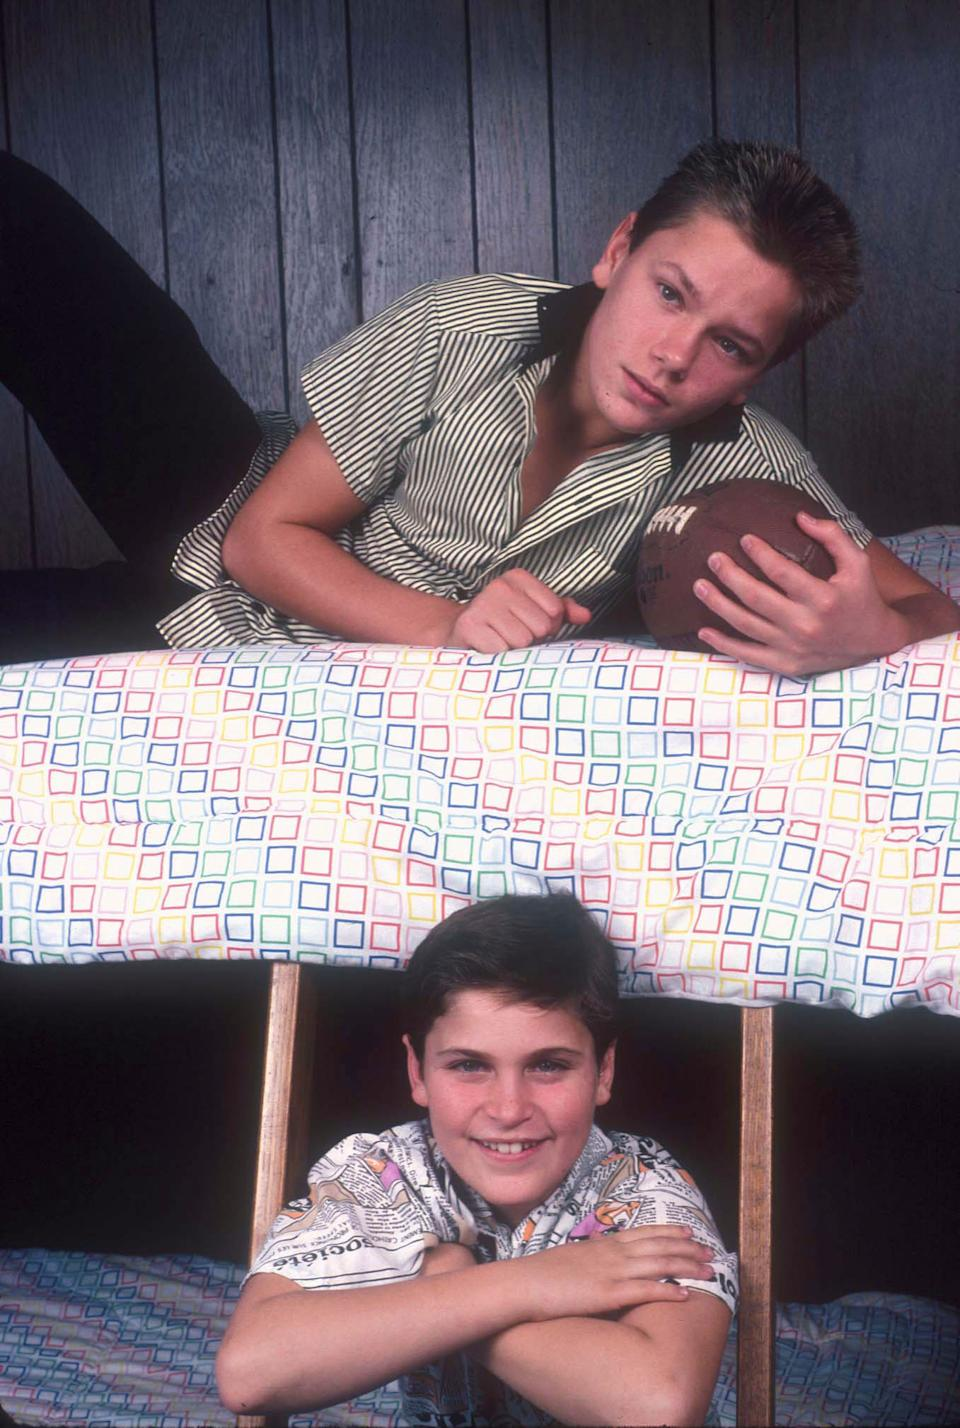 American actors Joaquin and River Phoenix in the bunk bed they shared at their home in Los Angeles, California, US, circa 1985. (Photo by Dianna Whitley/Getty Images)